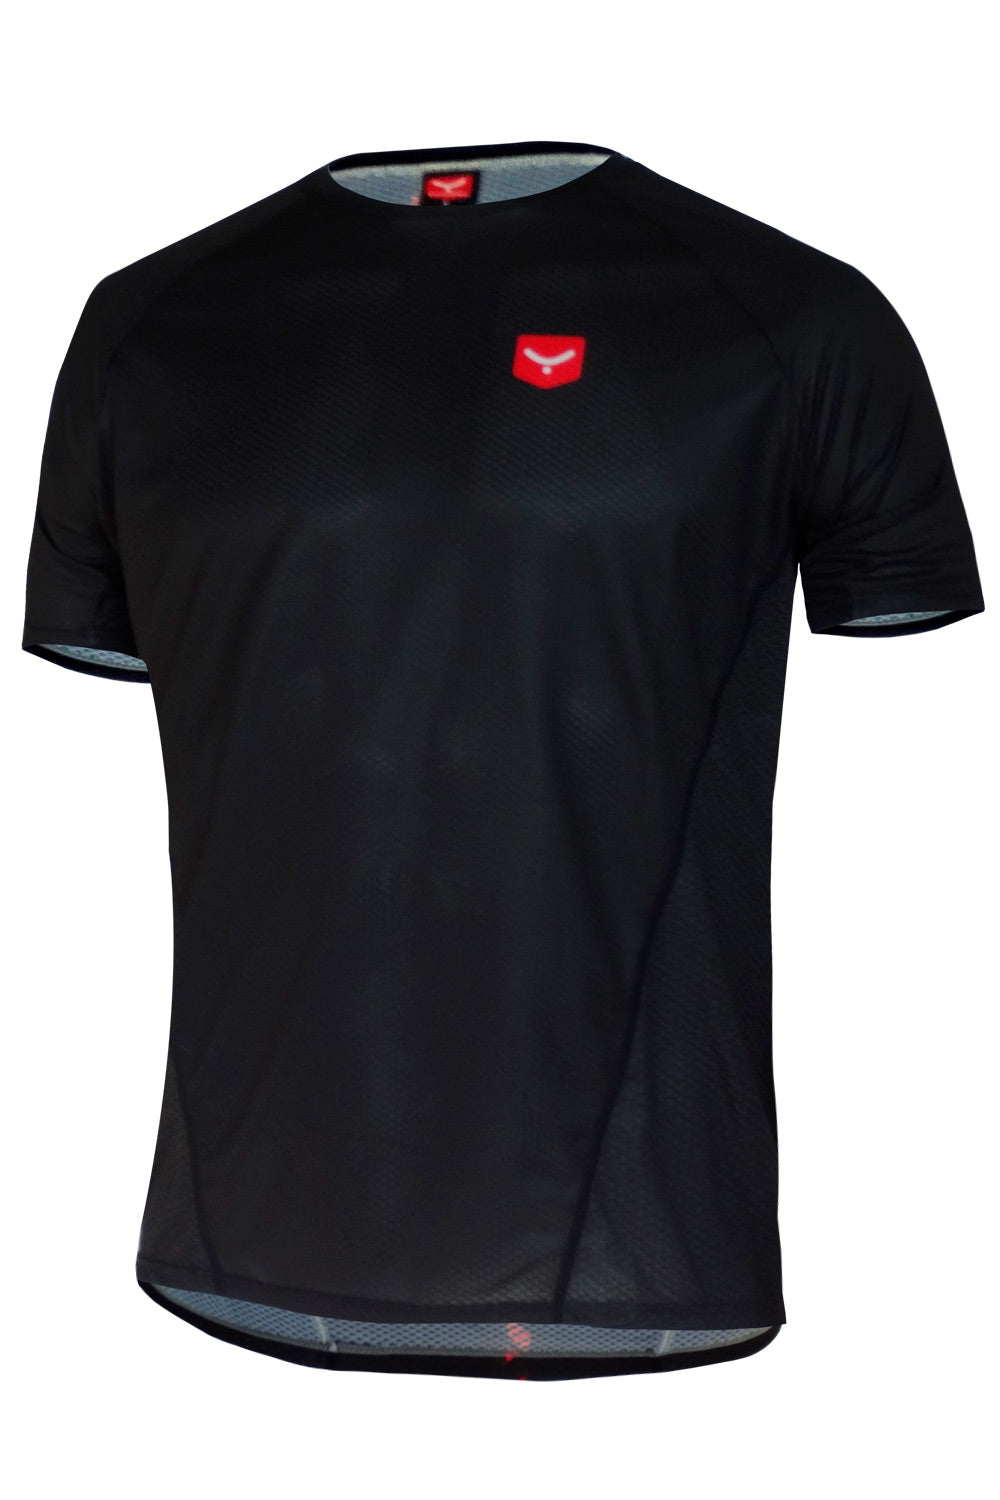 R41 Playera Run Manga Corta Renglan (SIR) - Taymory 2018 - REJOVI